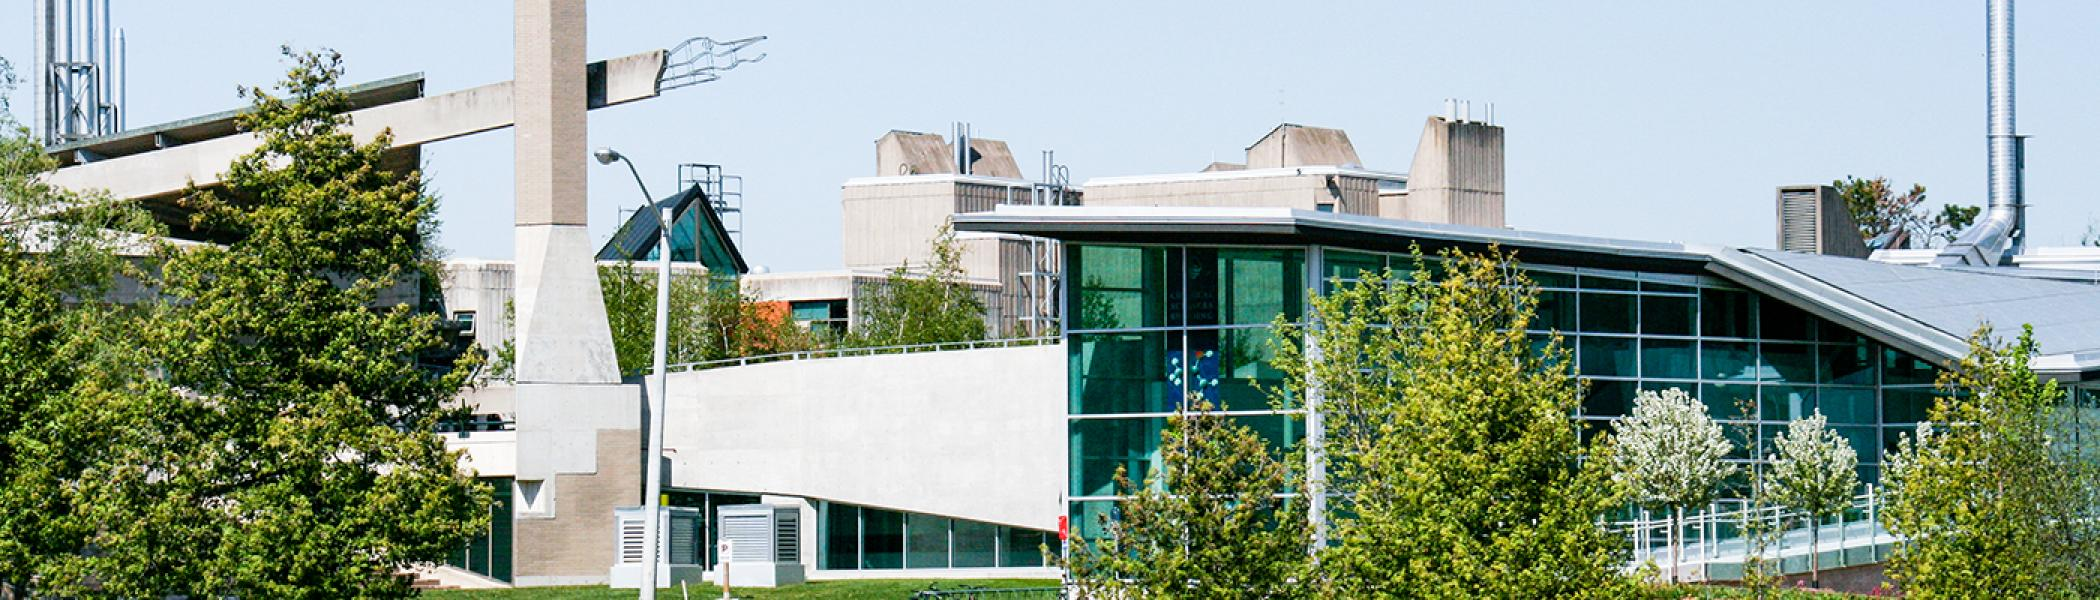 Exterior view of the Chemical Sciences Building from across the Otonabee river in the summer afternoon sun